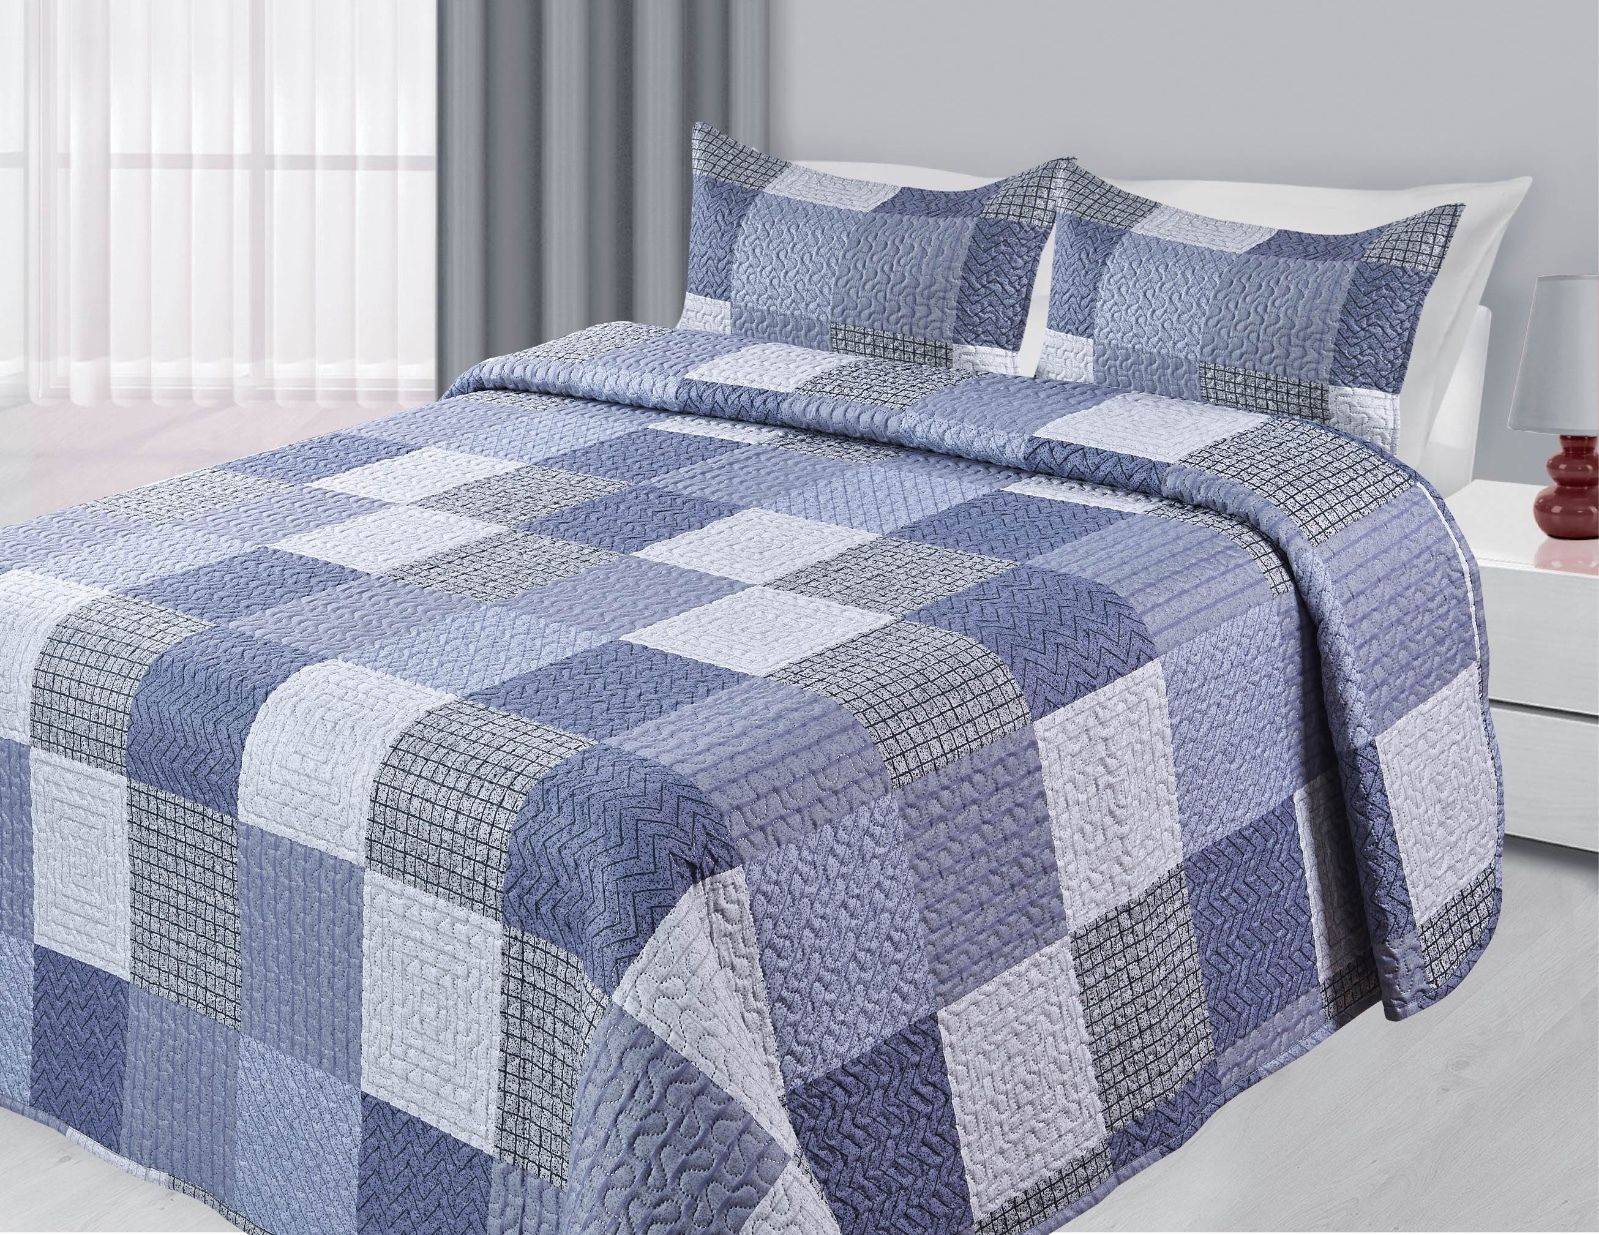 3-Piece Reversible Quilted Printed Bedspread Coverlet Blue Patchwork Queen Size by